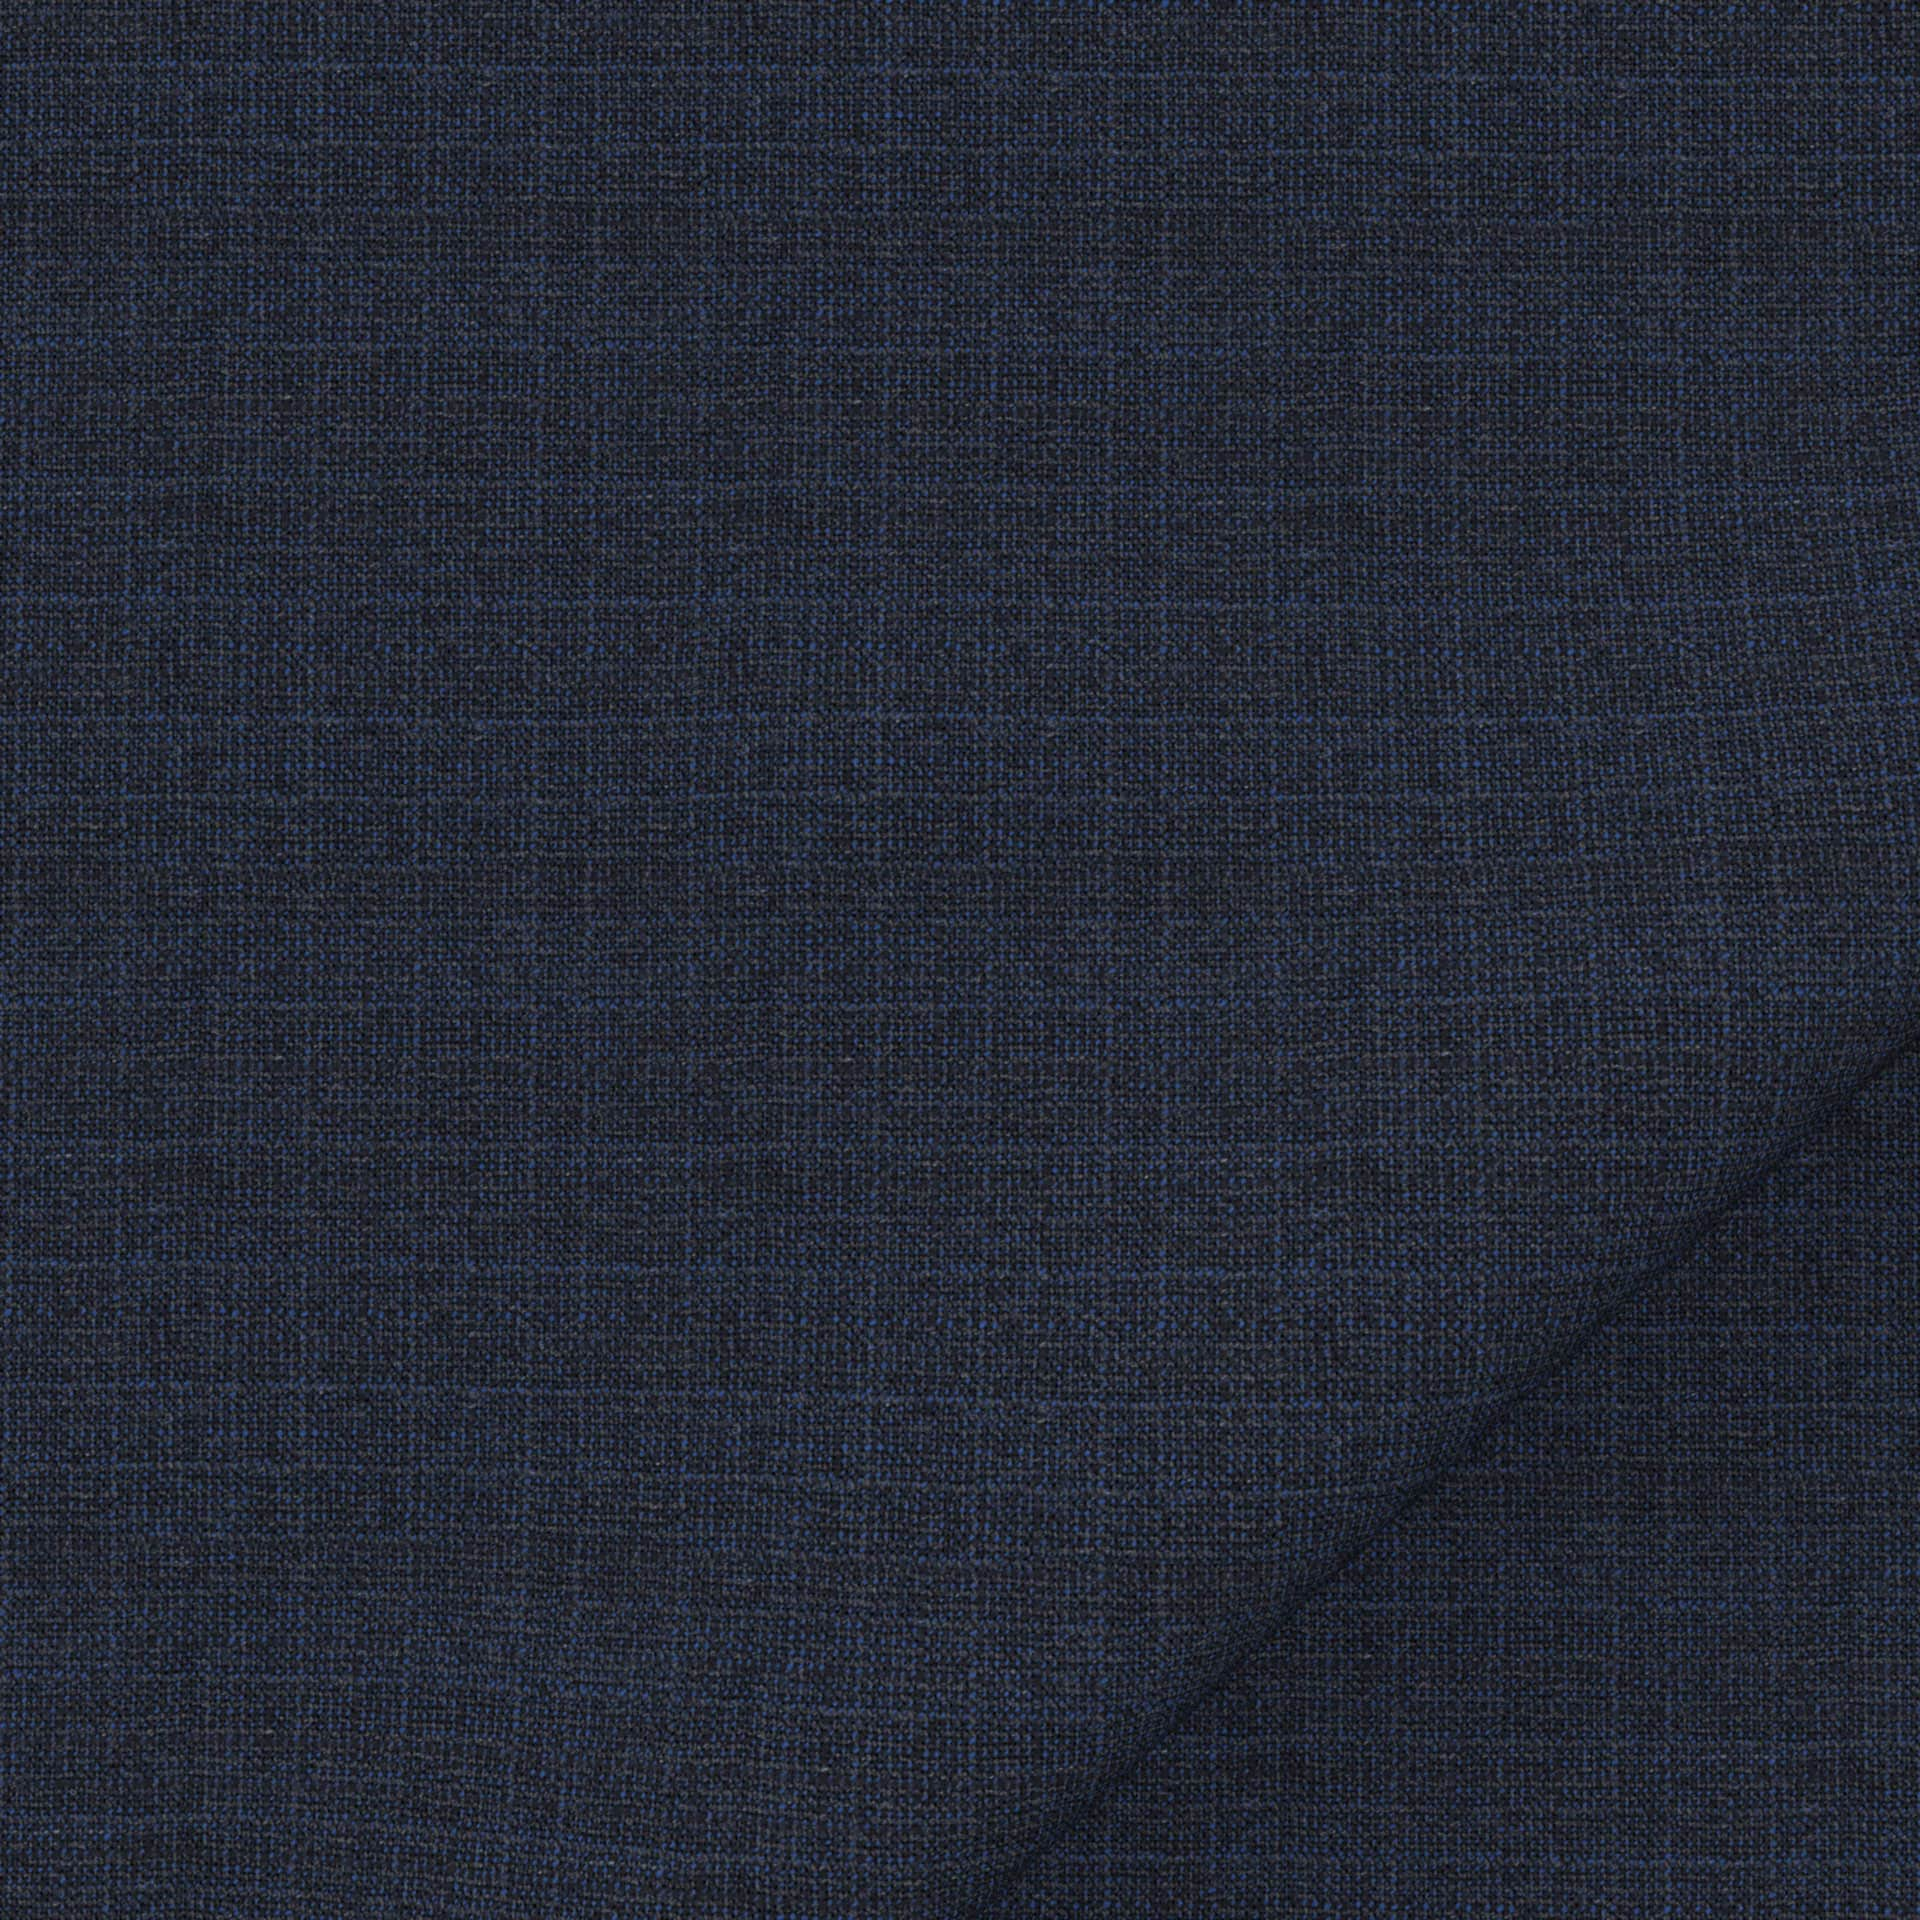 Custom-made-suit-plain-weave-square-blue-Italian-fabric-onceaday